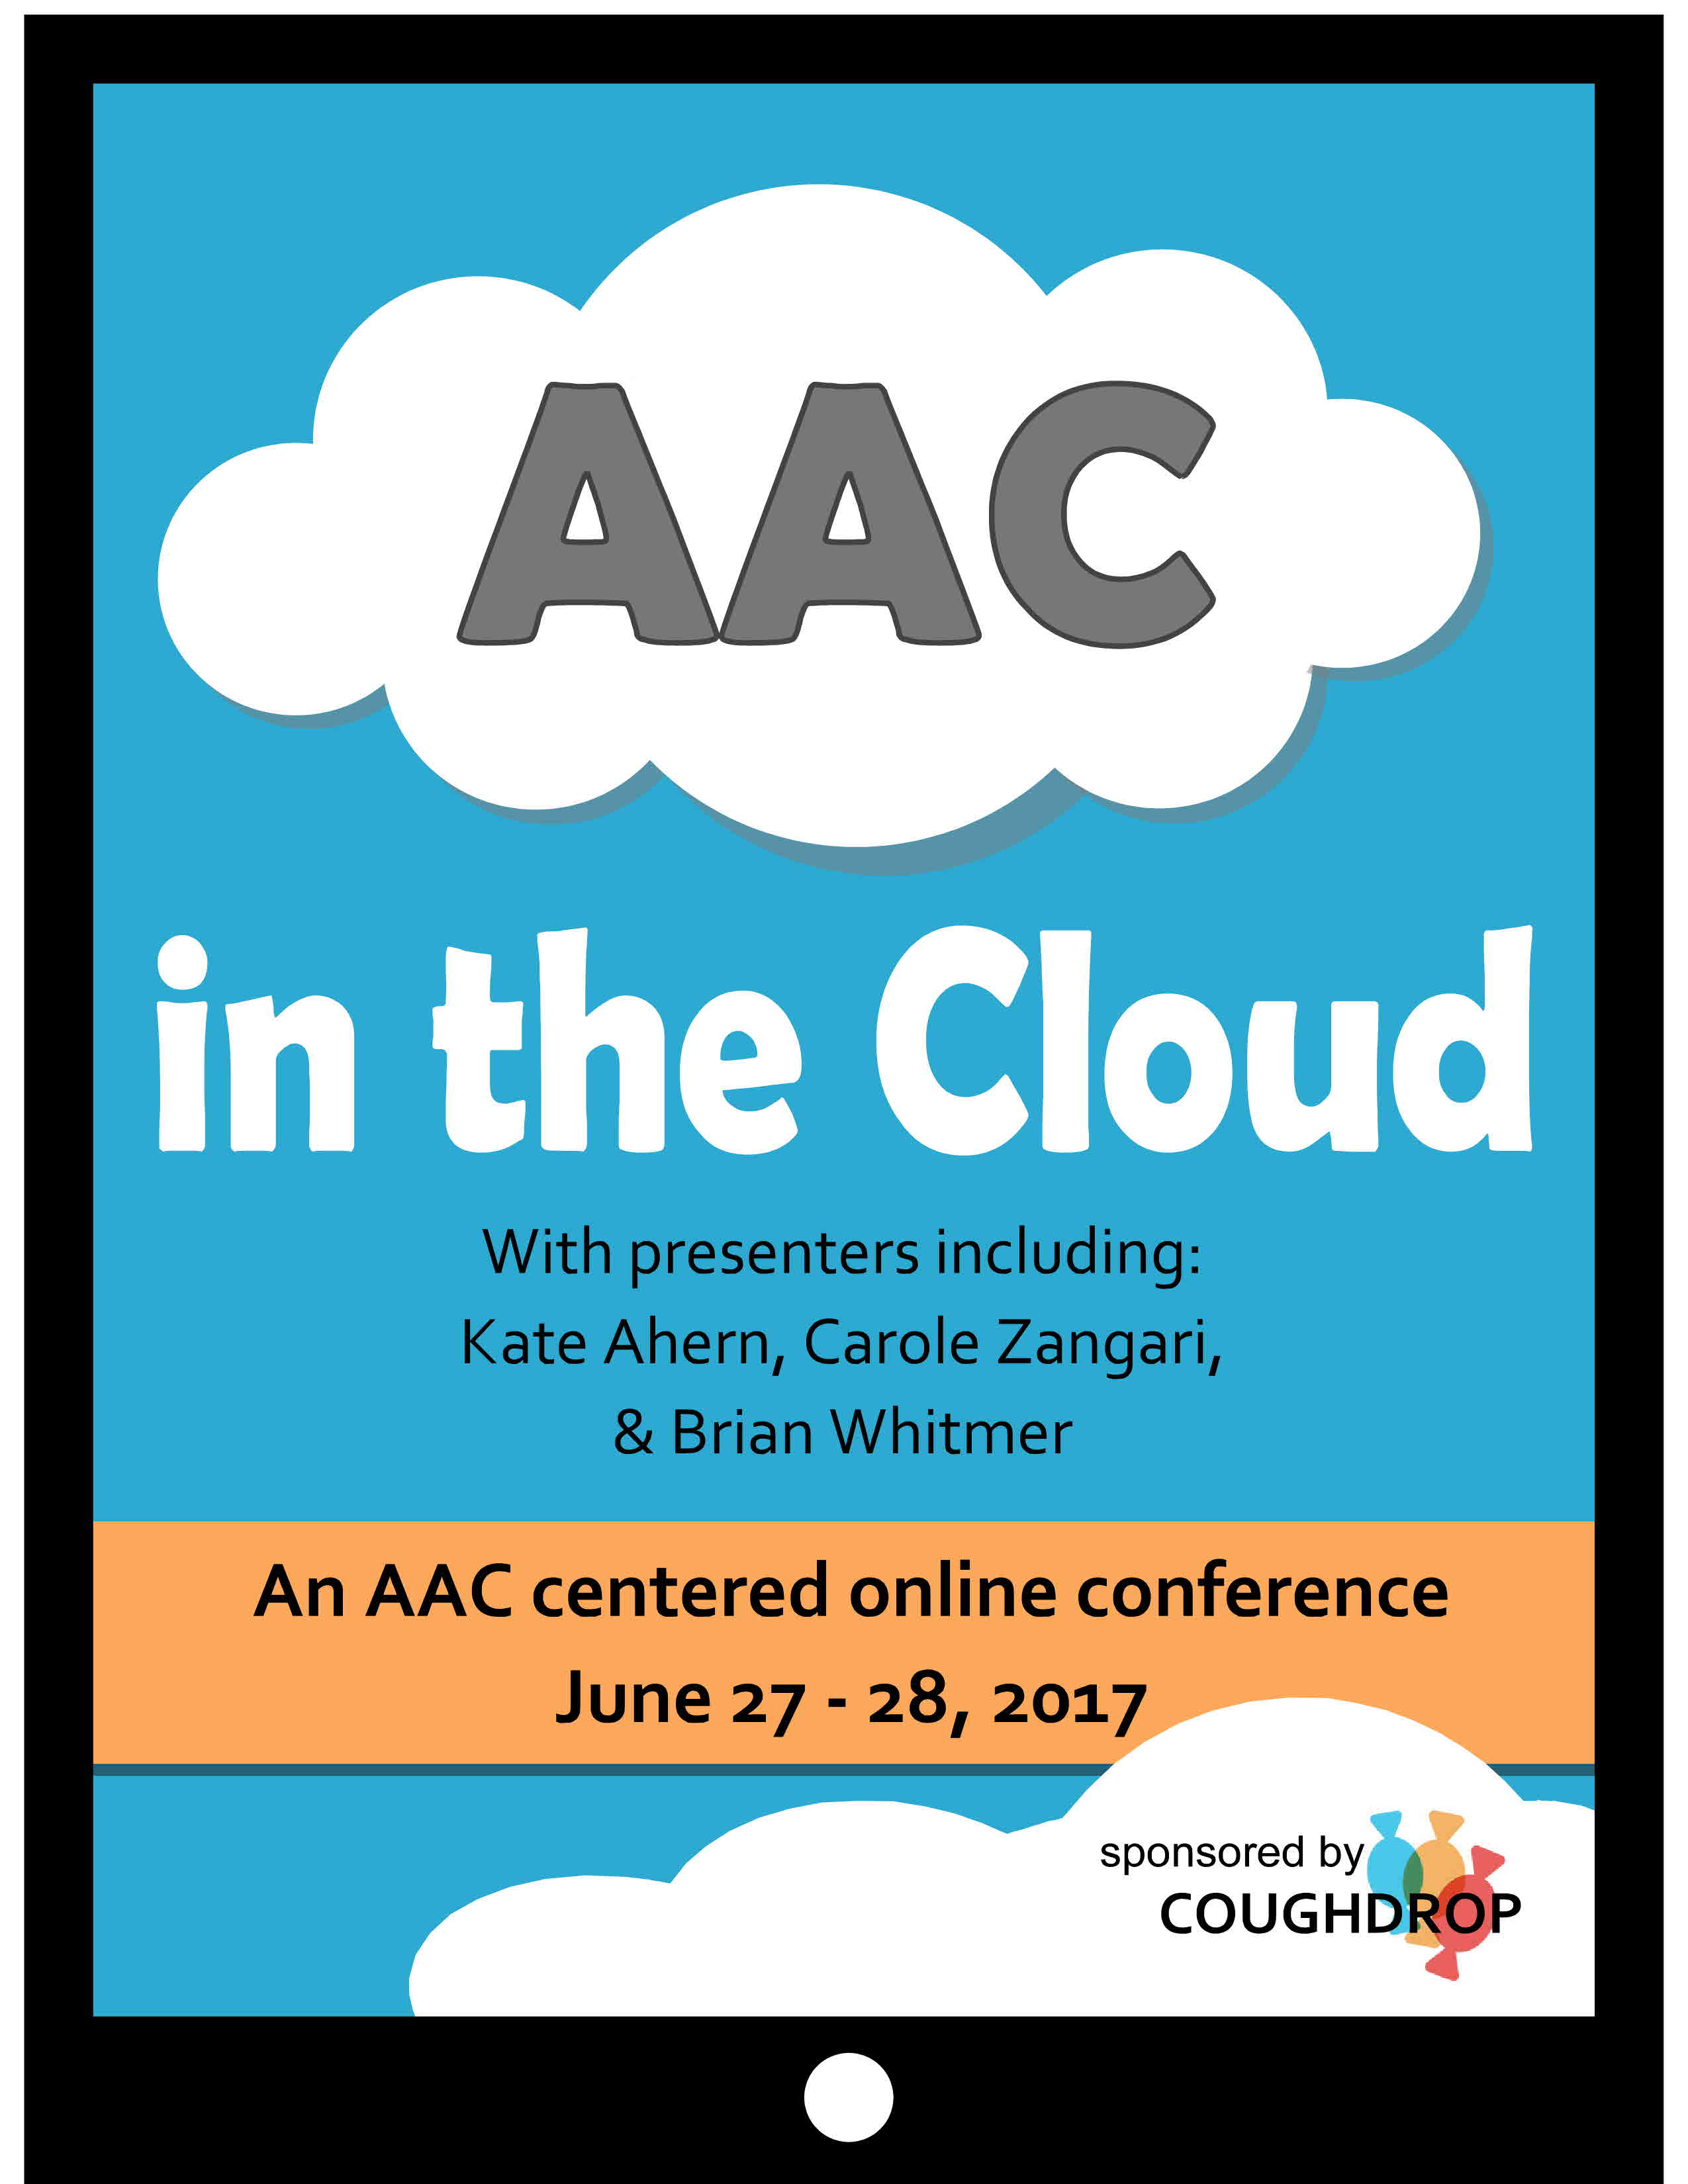 Image of the letter 'AAC' in a cloud on the screen of an iPad with text describing the AAC in the cloud conference